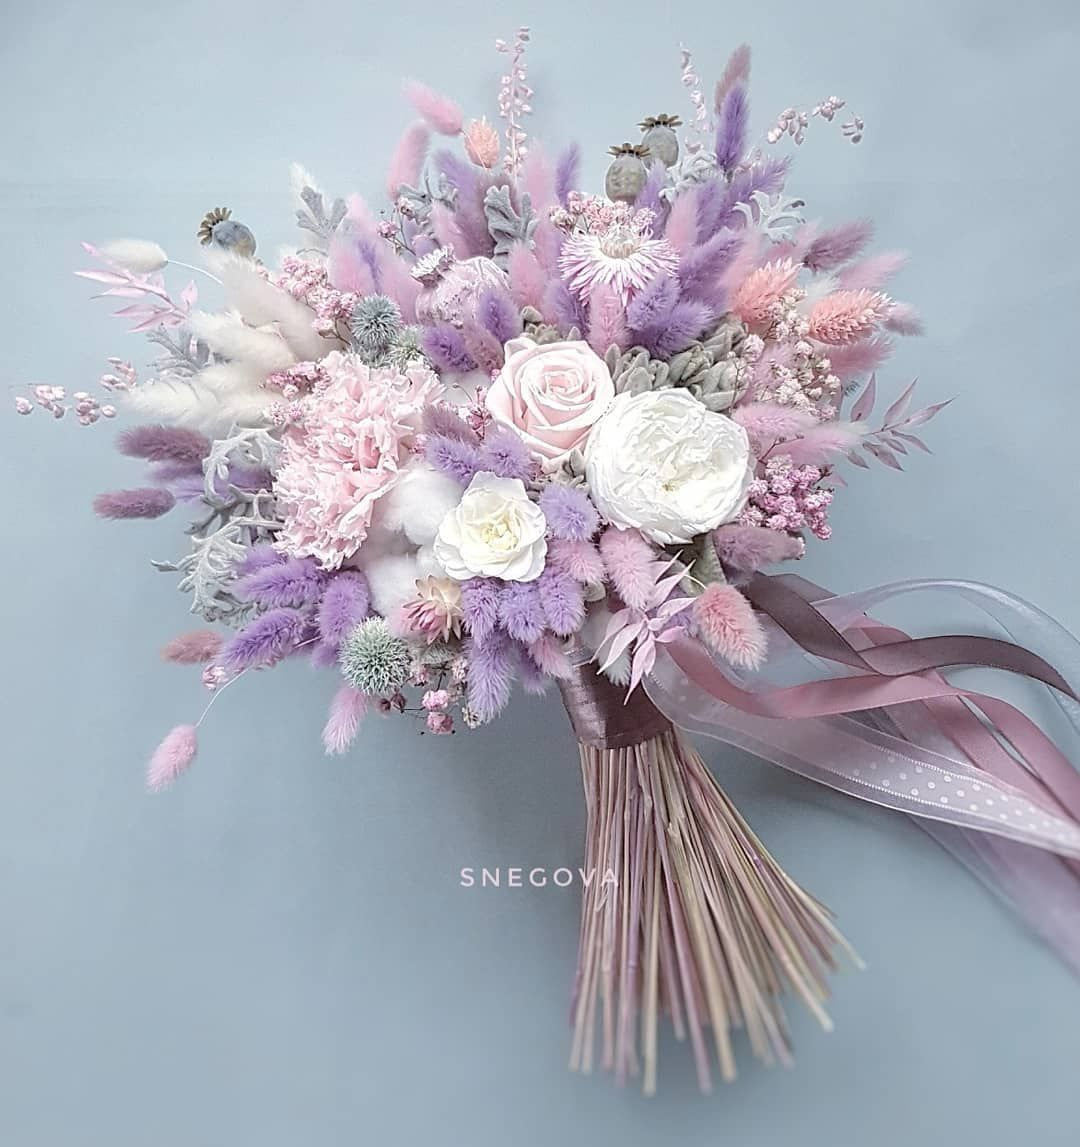 Unfading Bouquet Of Natural Plants Driedflowers Preservedflowers 35 28cm Intern In 2020 Wedding Flower Trends Flower Bouquet Wedding Small Wedding Bouquets